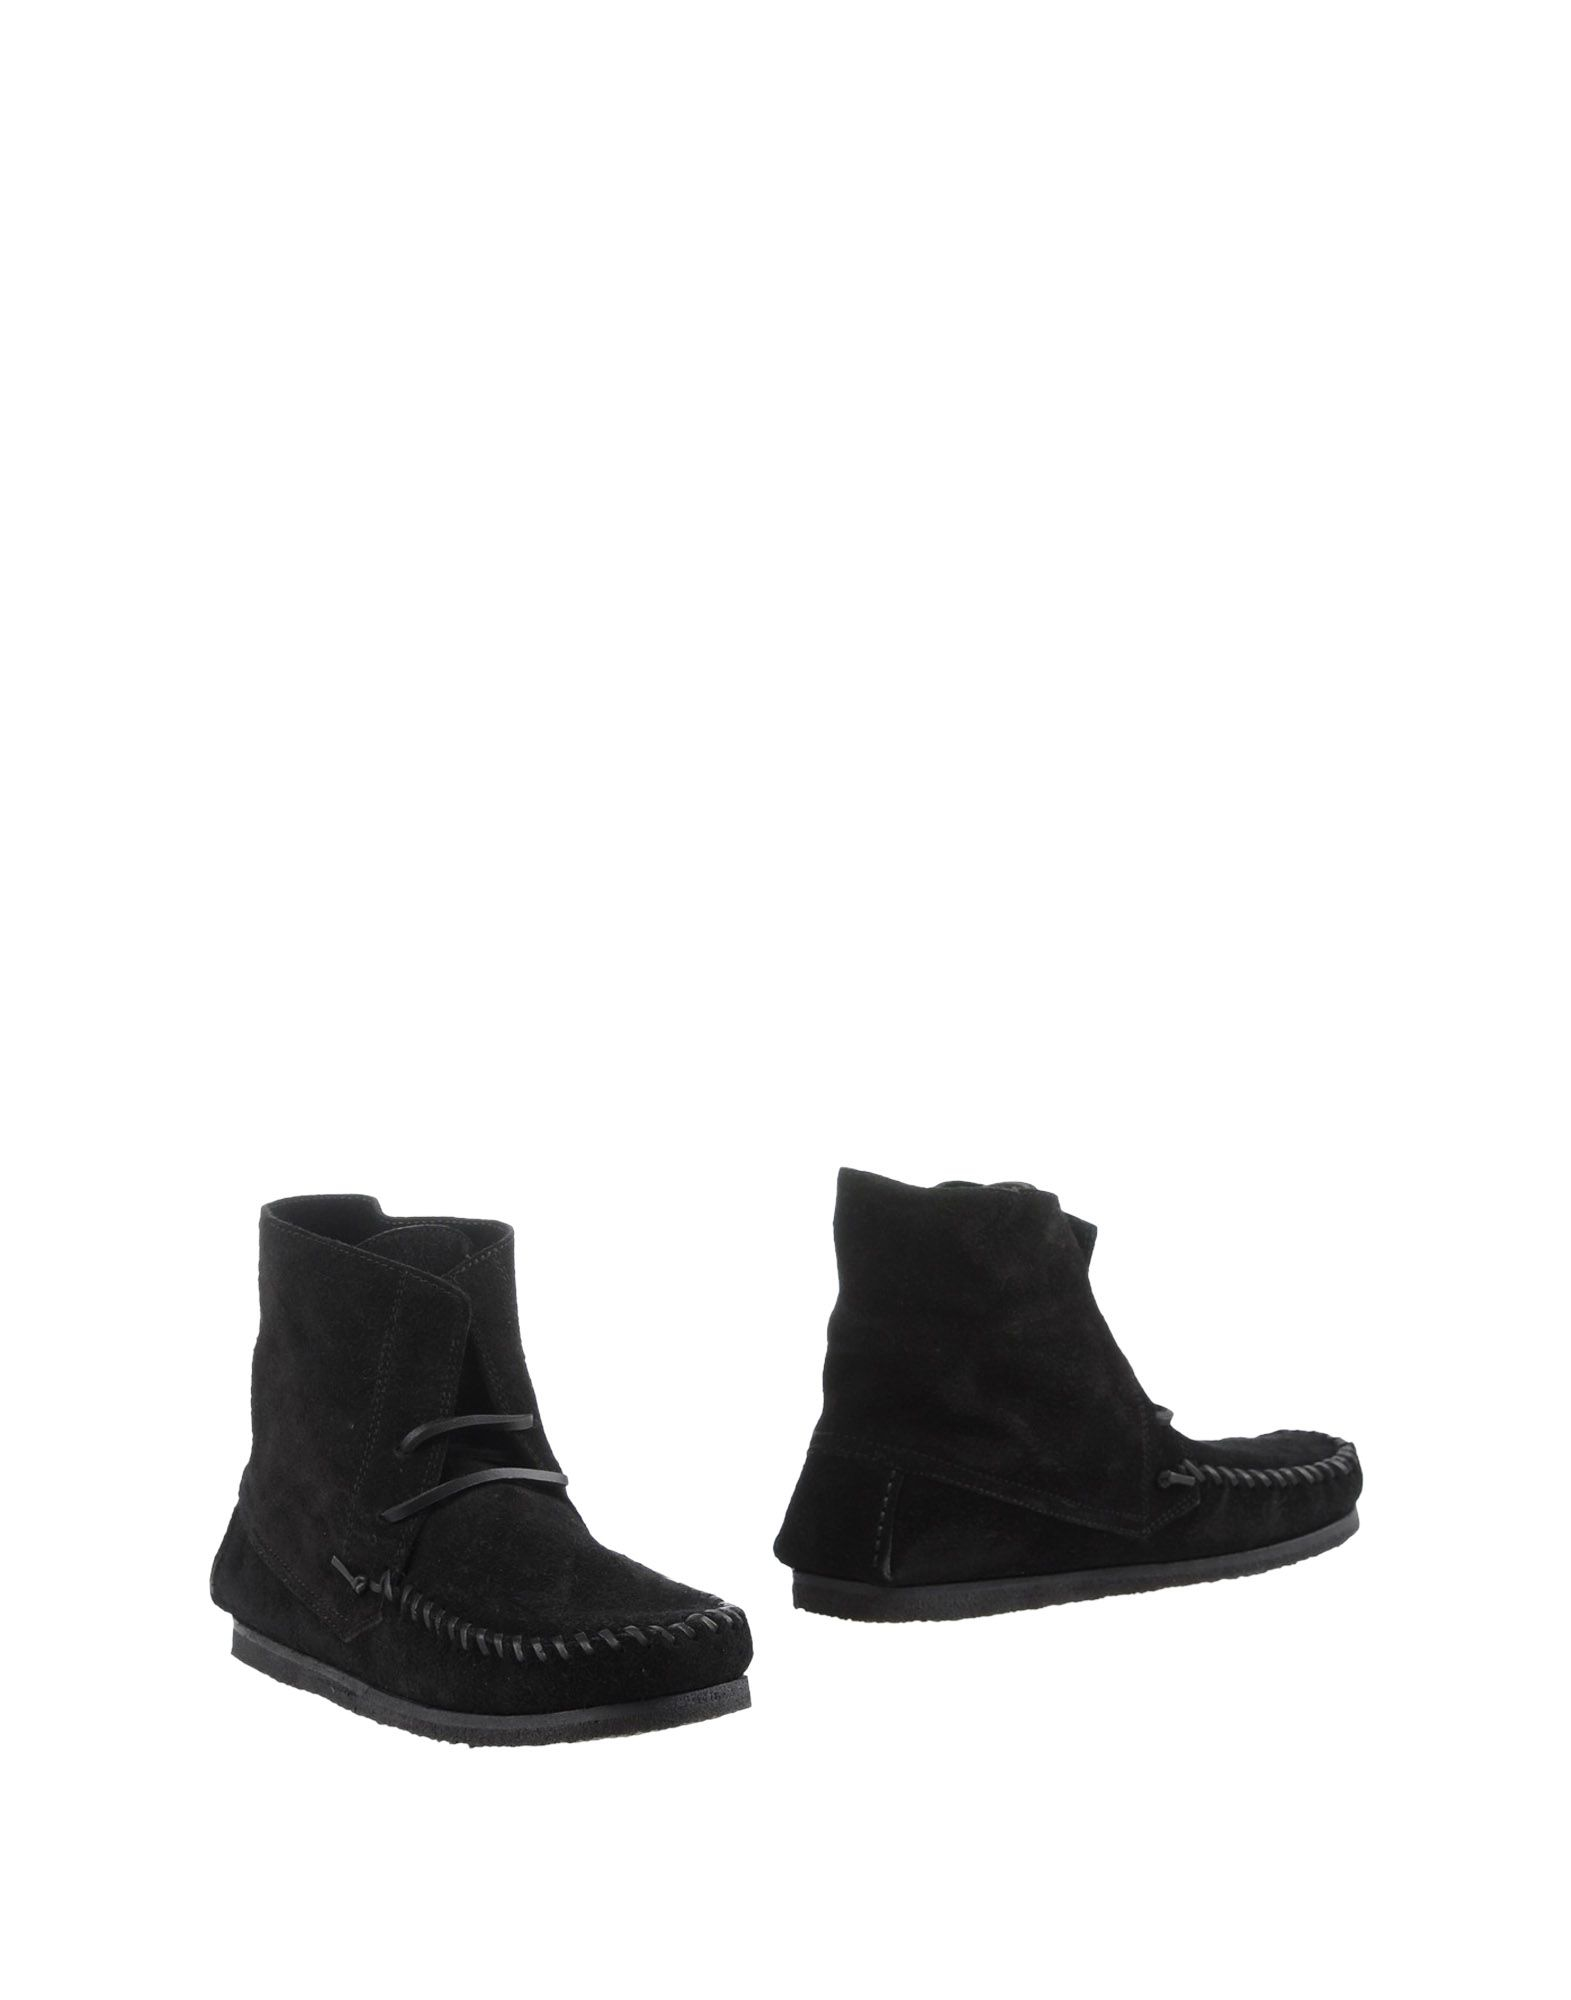 isabel marant lace up suede ankle boots in black lyst. Black Bedroom Furniture Sets. Home Design Ideas